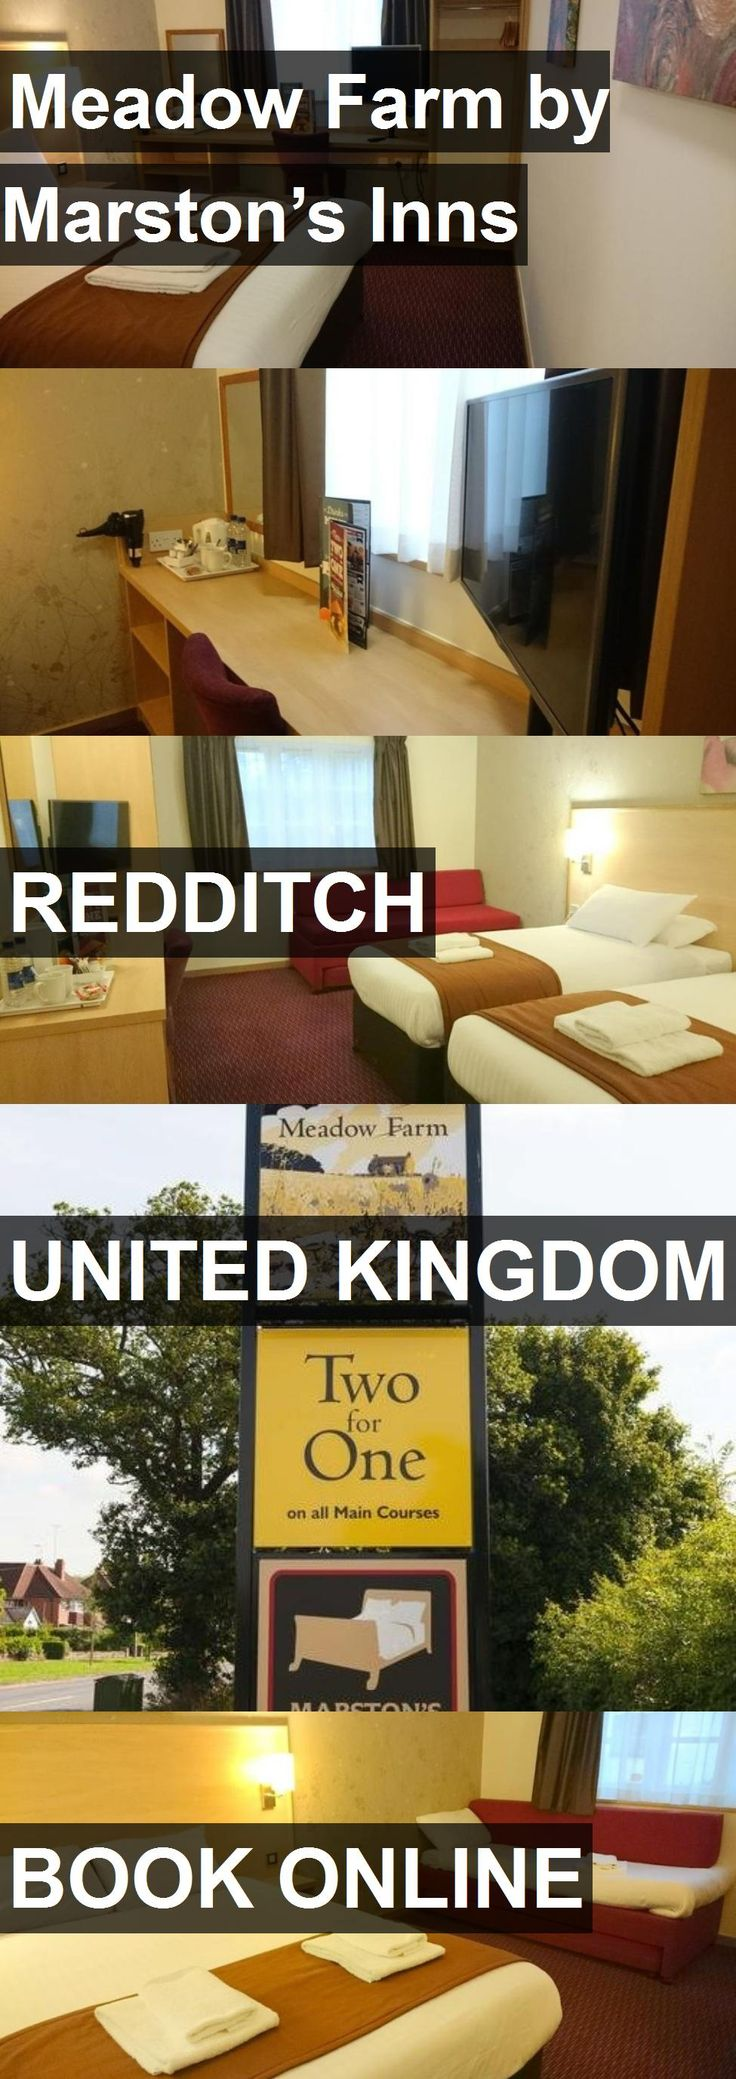 Hotel Meadow Farm by Marston's Inns in REDDITCH, United Kingdom. For more information, photos, reviews and best prices please follow the link. #UnitedKingdom #REDDITCH #travel #vacation #hotel